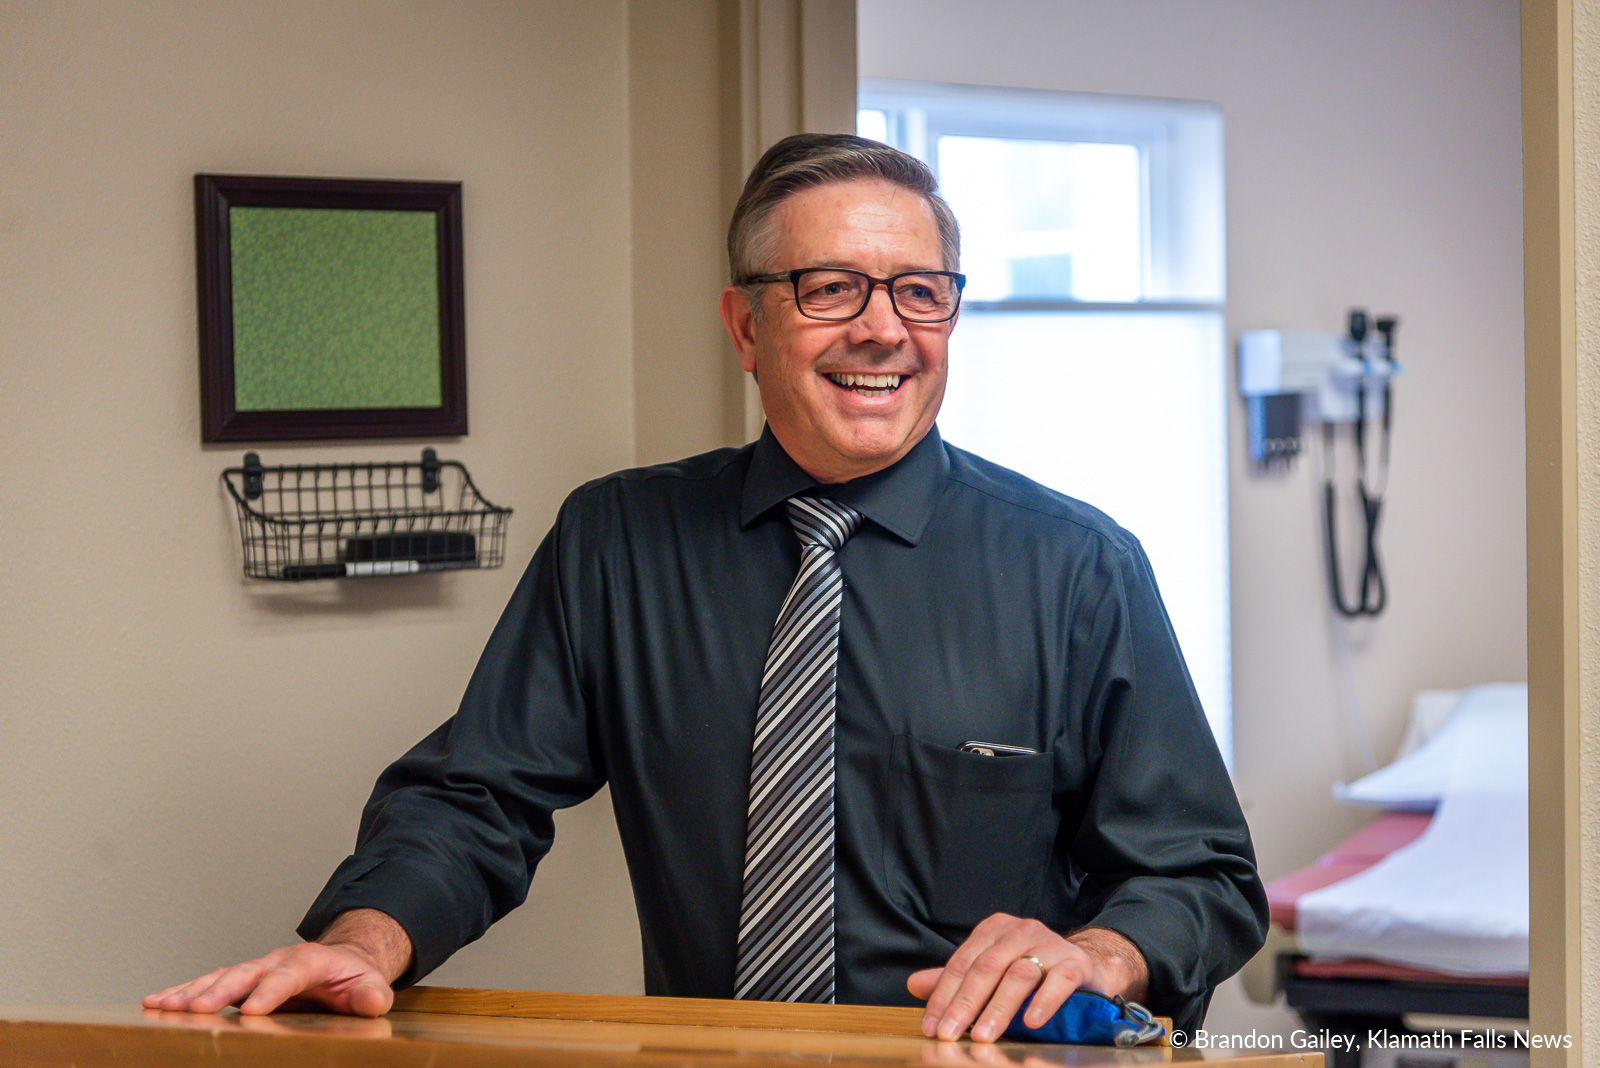 KCSD Superintendent Glen Szymoniak speaks about the benefits of having a Student Based Health Center on the Mazama High School Campus. March 9, 2019 (Brandon Gailey / Klamath Falls News)